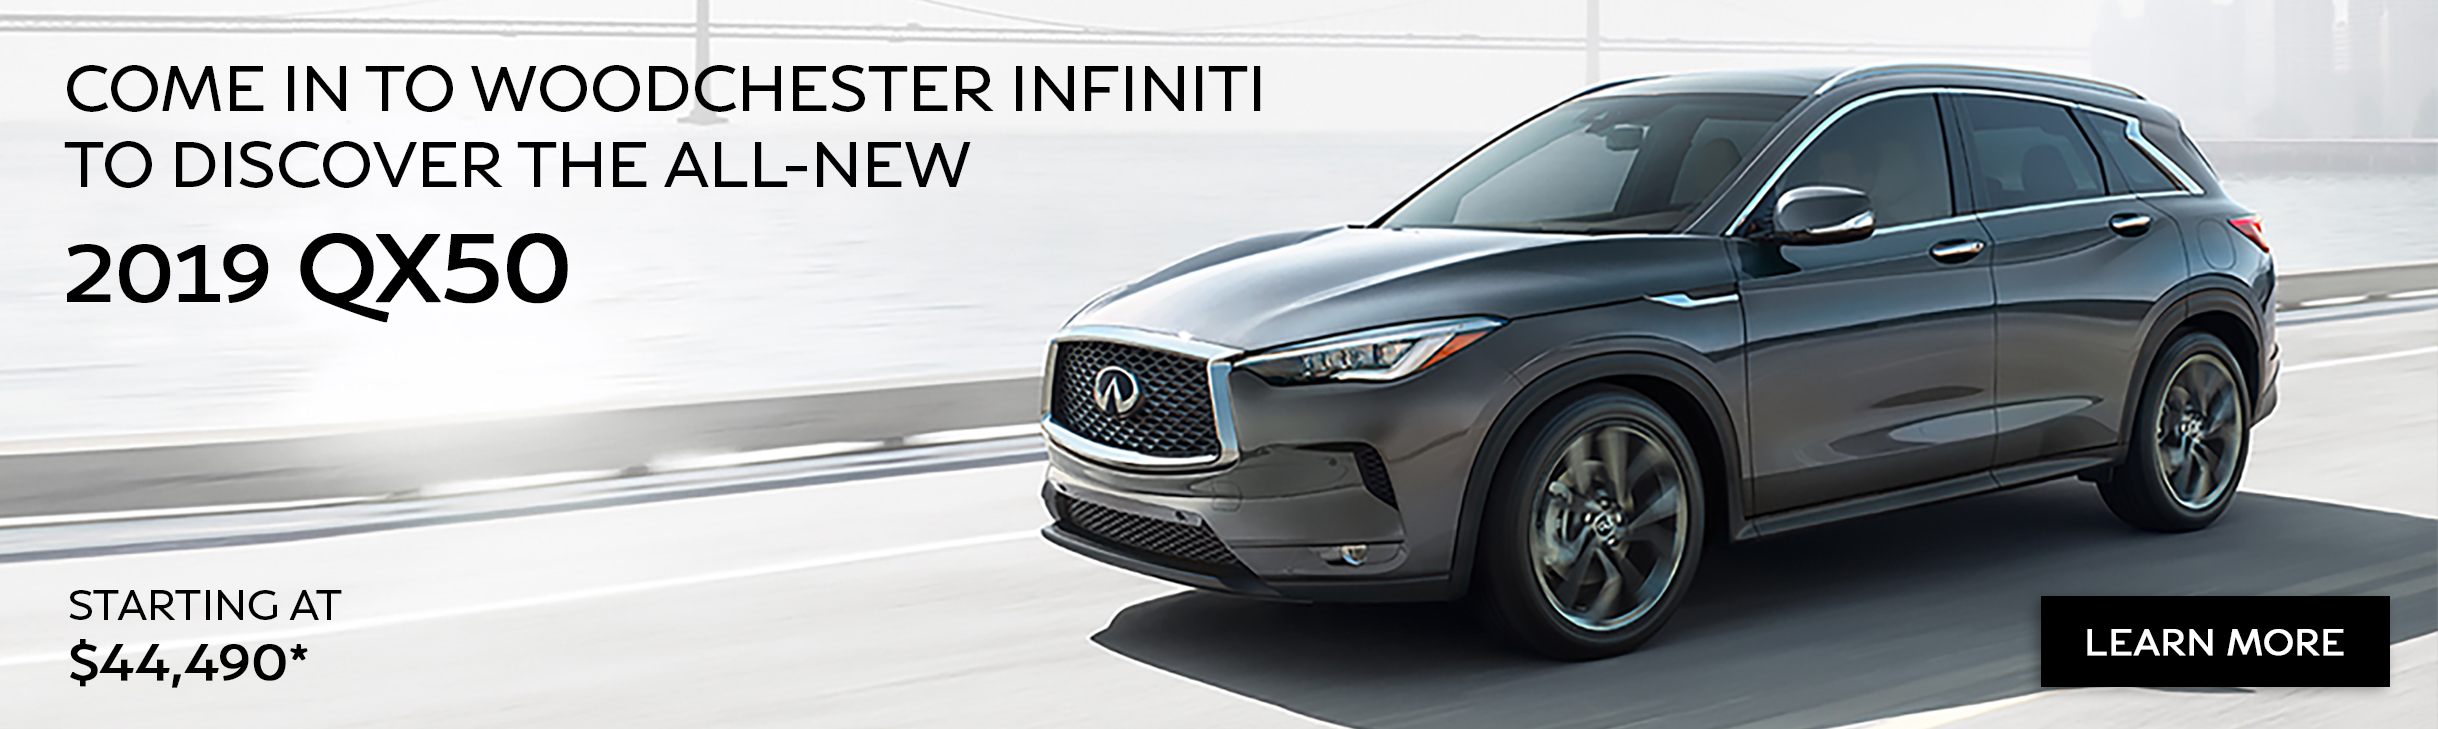 county dealership middletown me ramsey bergen near new portraits for superb ny nj dealer nissan sale handsome infiniti infinity hand first